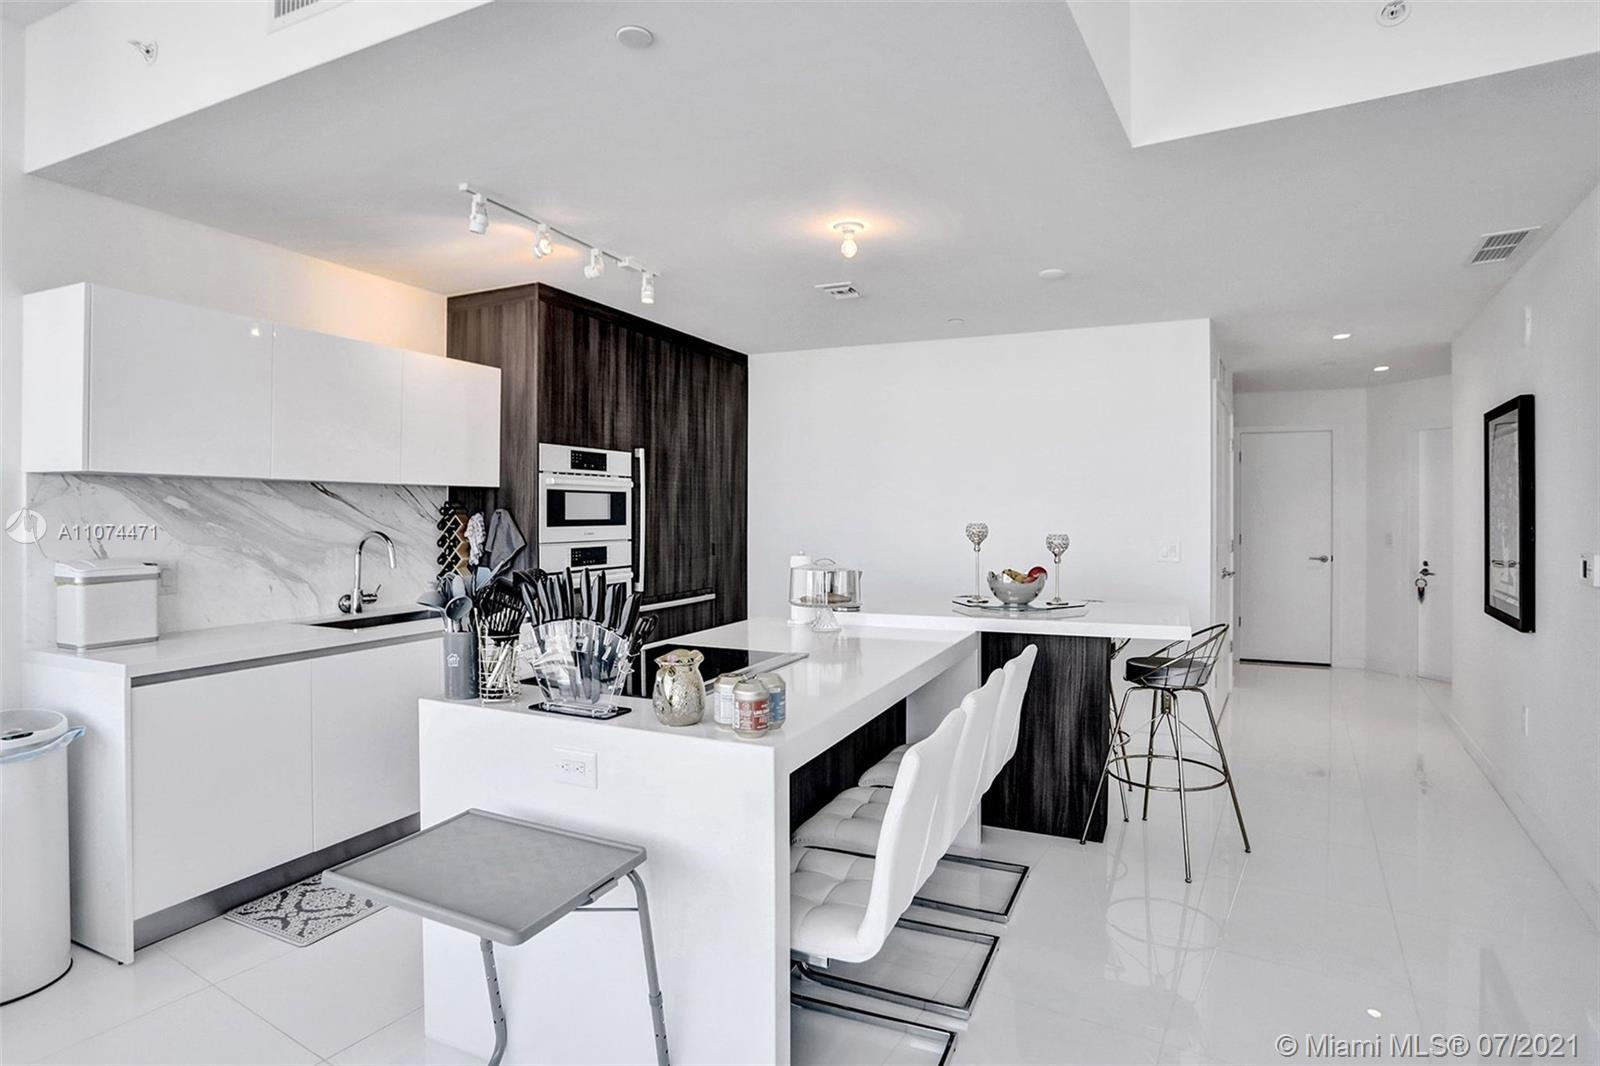 Beautiful 1bed + den / 2 bath. 1,491sqf. Very specious,10 foot ceilings with private foyer, design E